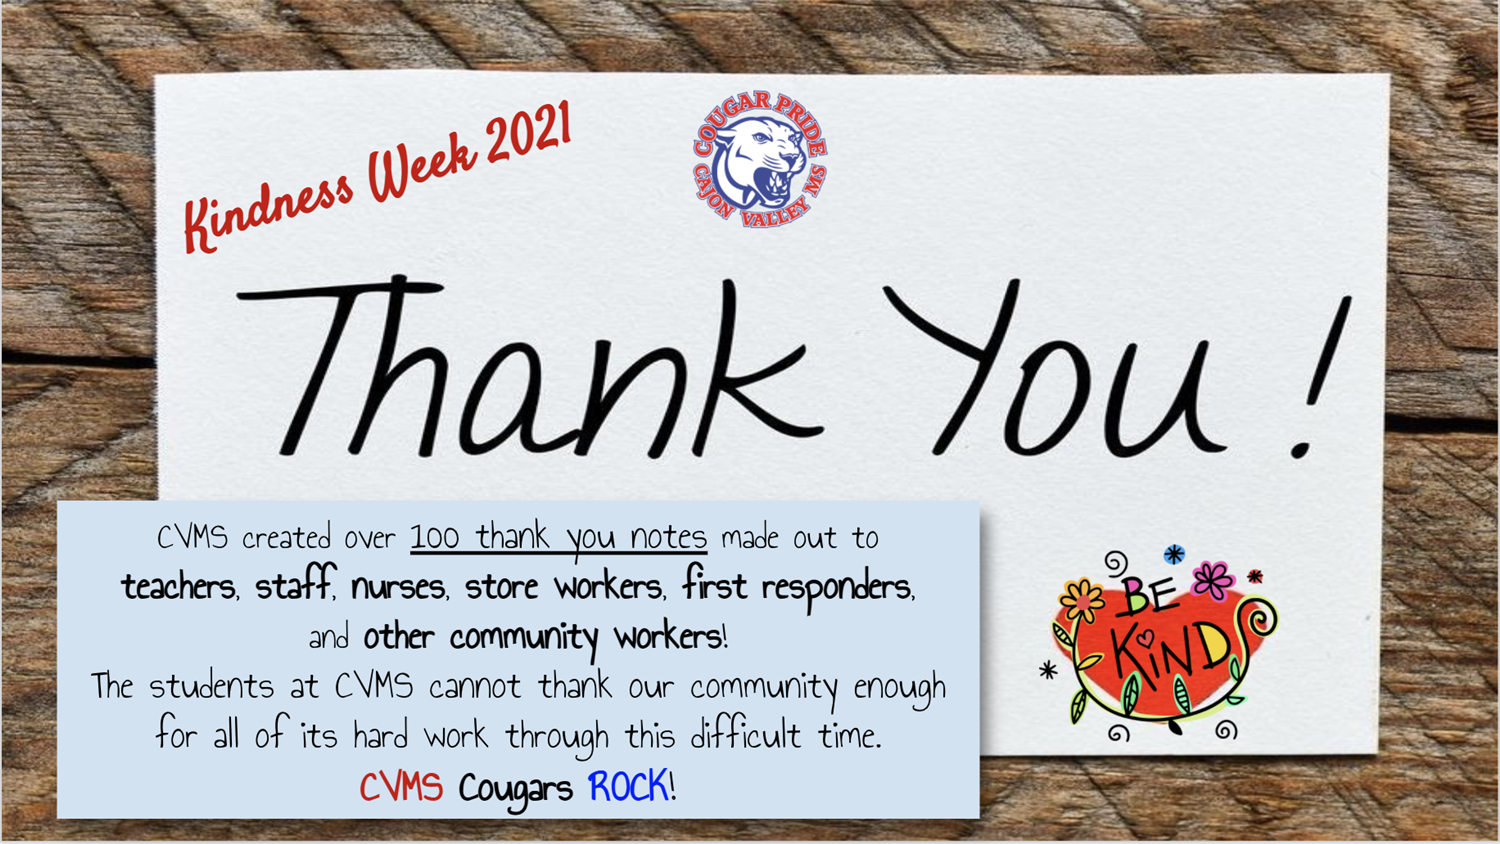 Last Week was #KindnessWeek 💗 #CVMScougars celebrated by writing thank you notes to many of our community members.  💌Thank you, teachers, staff, nurses, store workers, first responders, and other community workers for keeping us safe! #CVMScougarPRIDE